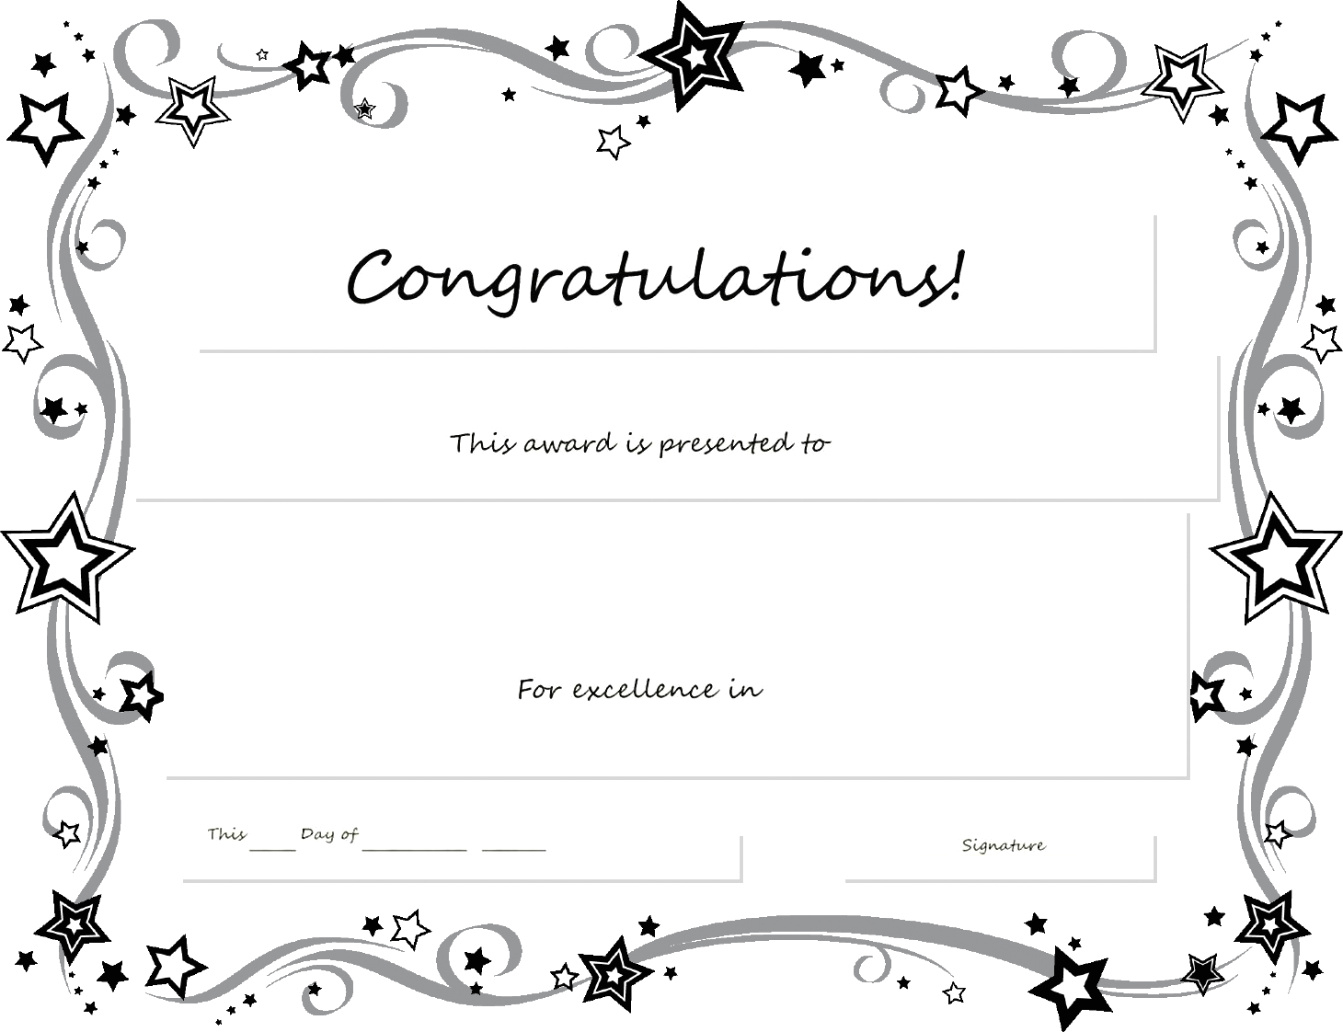 Blank Award Certificate Template - Zohre.horizonconsulting.co Throughout Congratulations Certificate Word Template